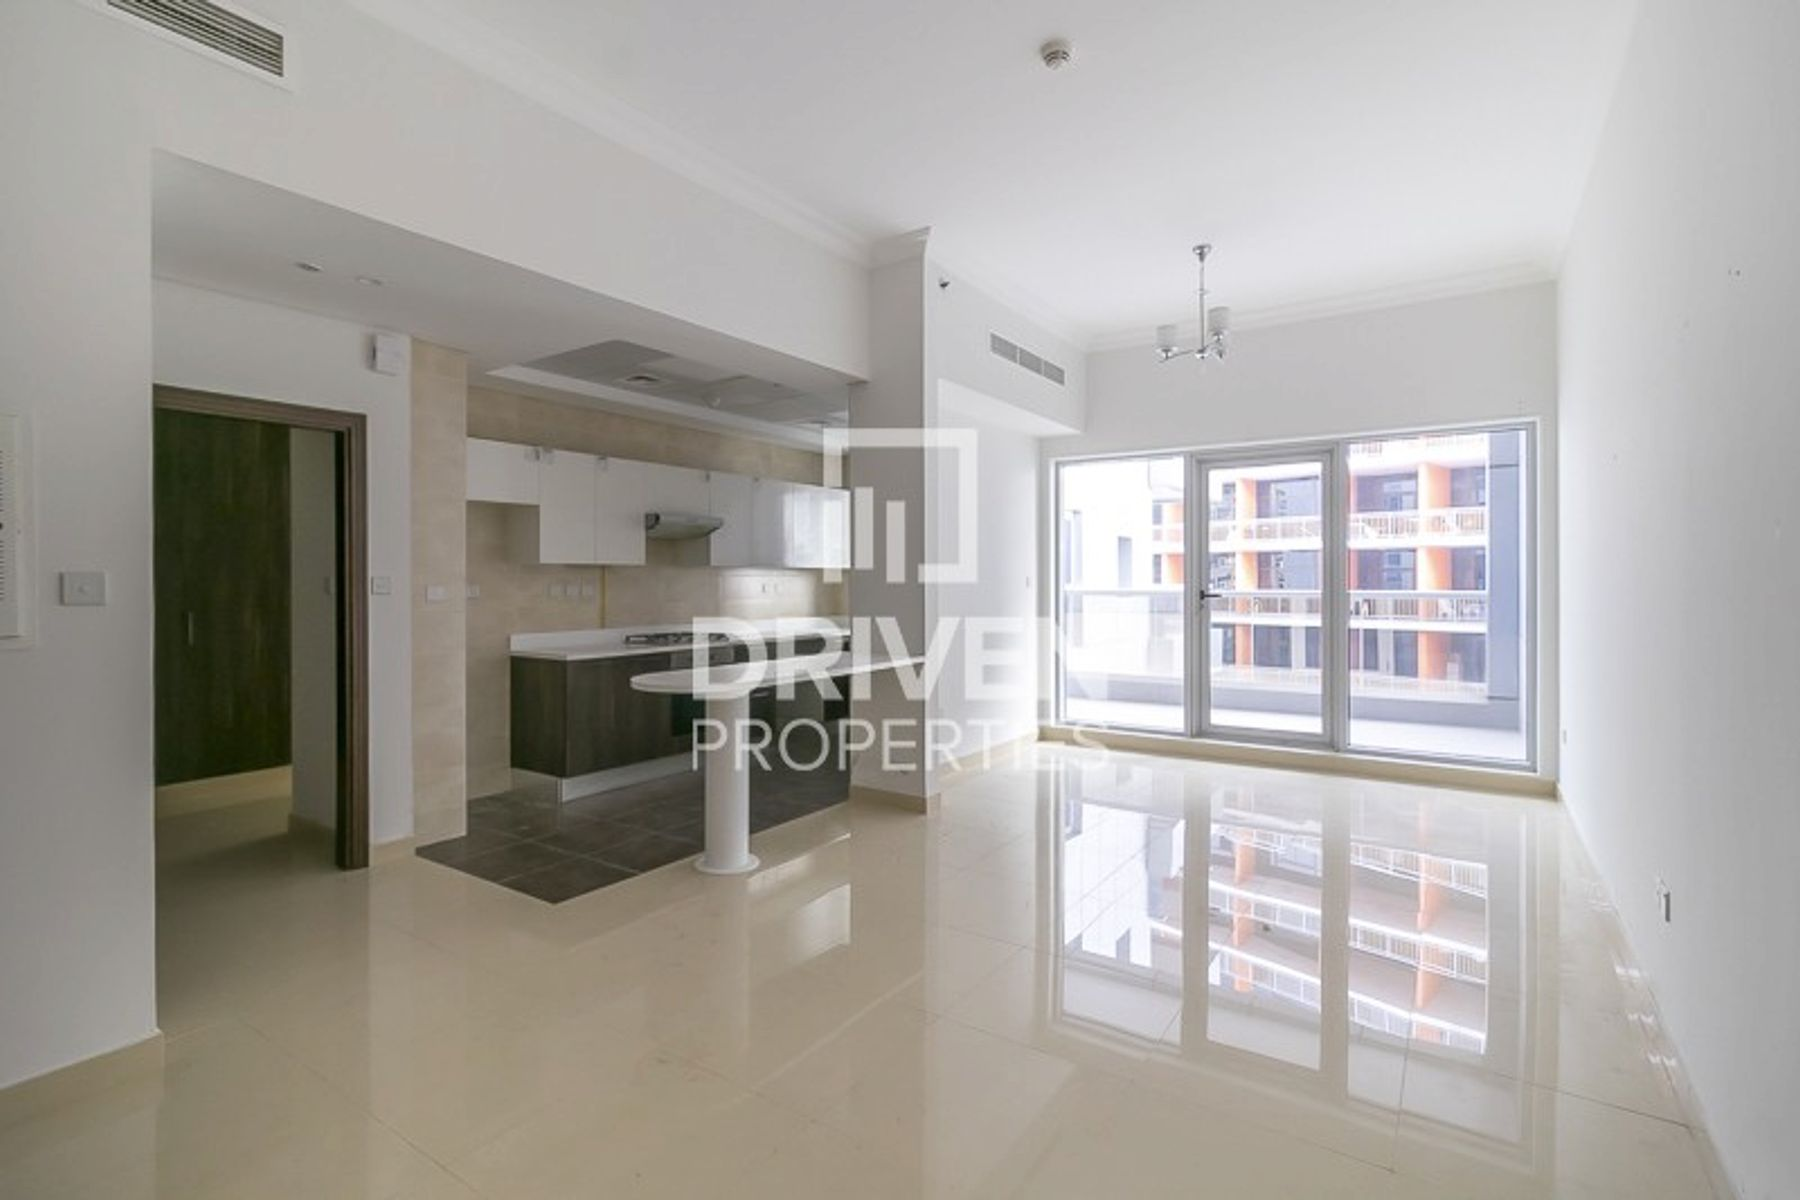 Stunning |1 bed Apt | Close to facilities